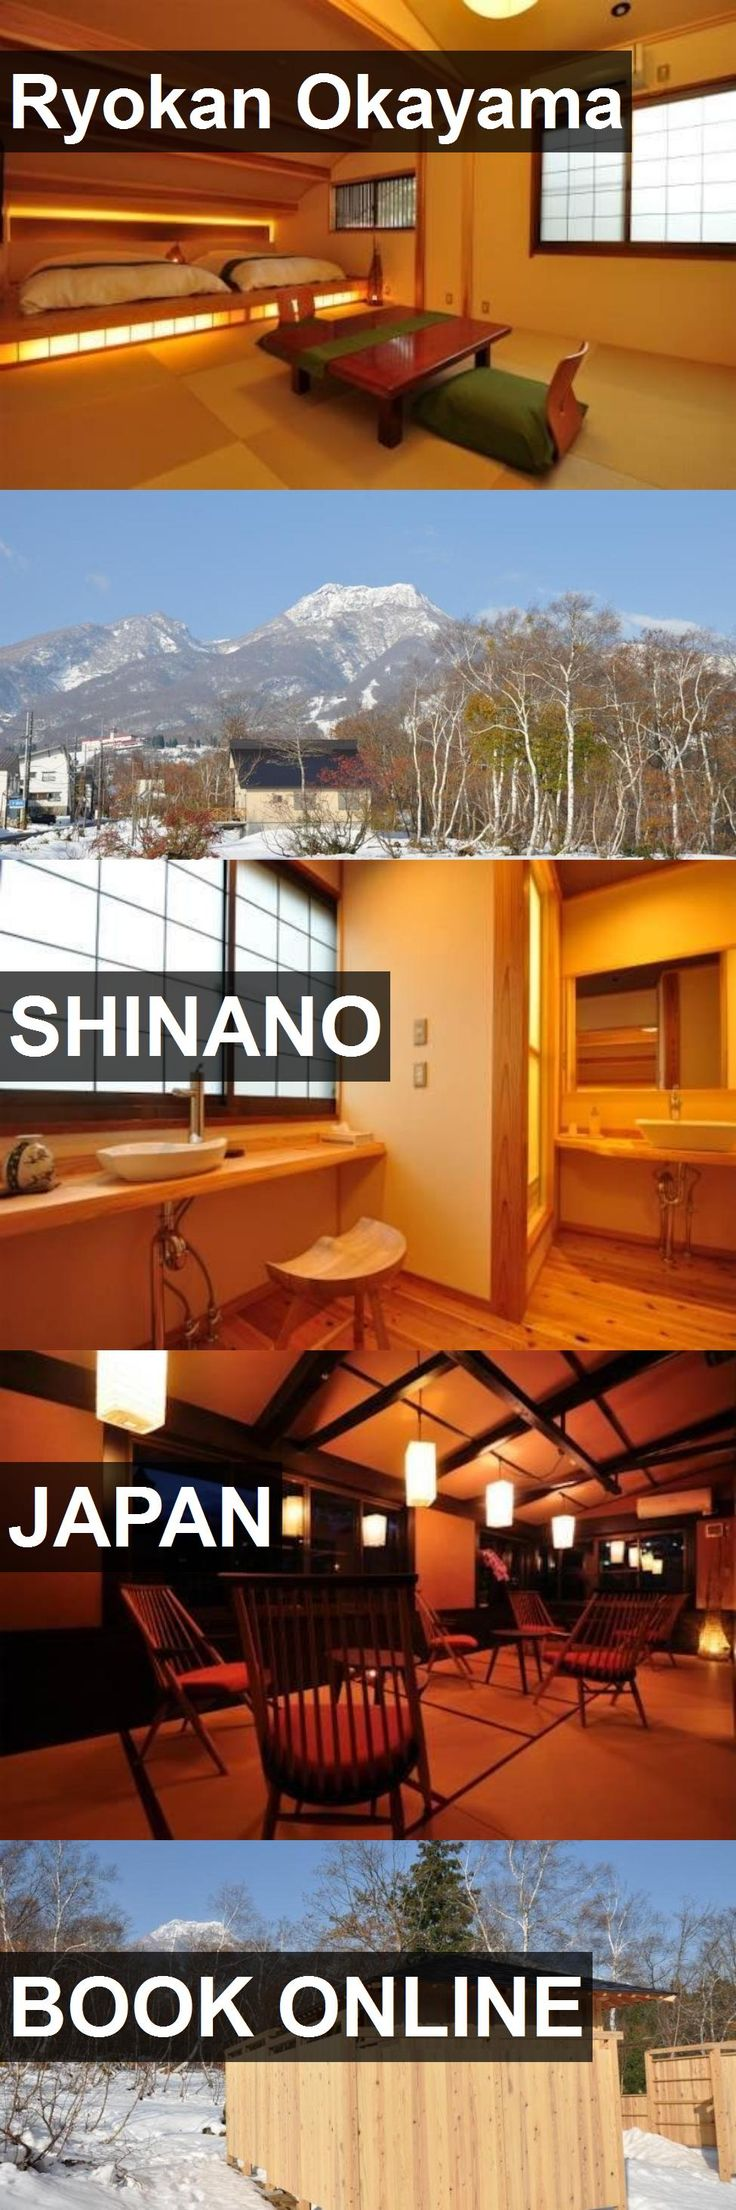 Hotel Ryokan Okayama in Shinano, Japan. For more information, photos, reviews and best prices please follow the link. #Japan #Shinano #travel #vacation #hotel